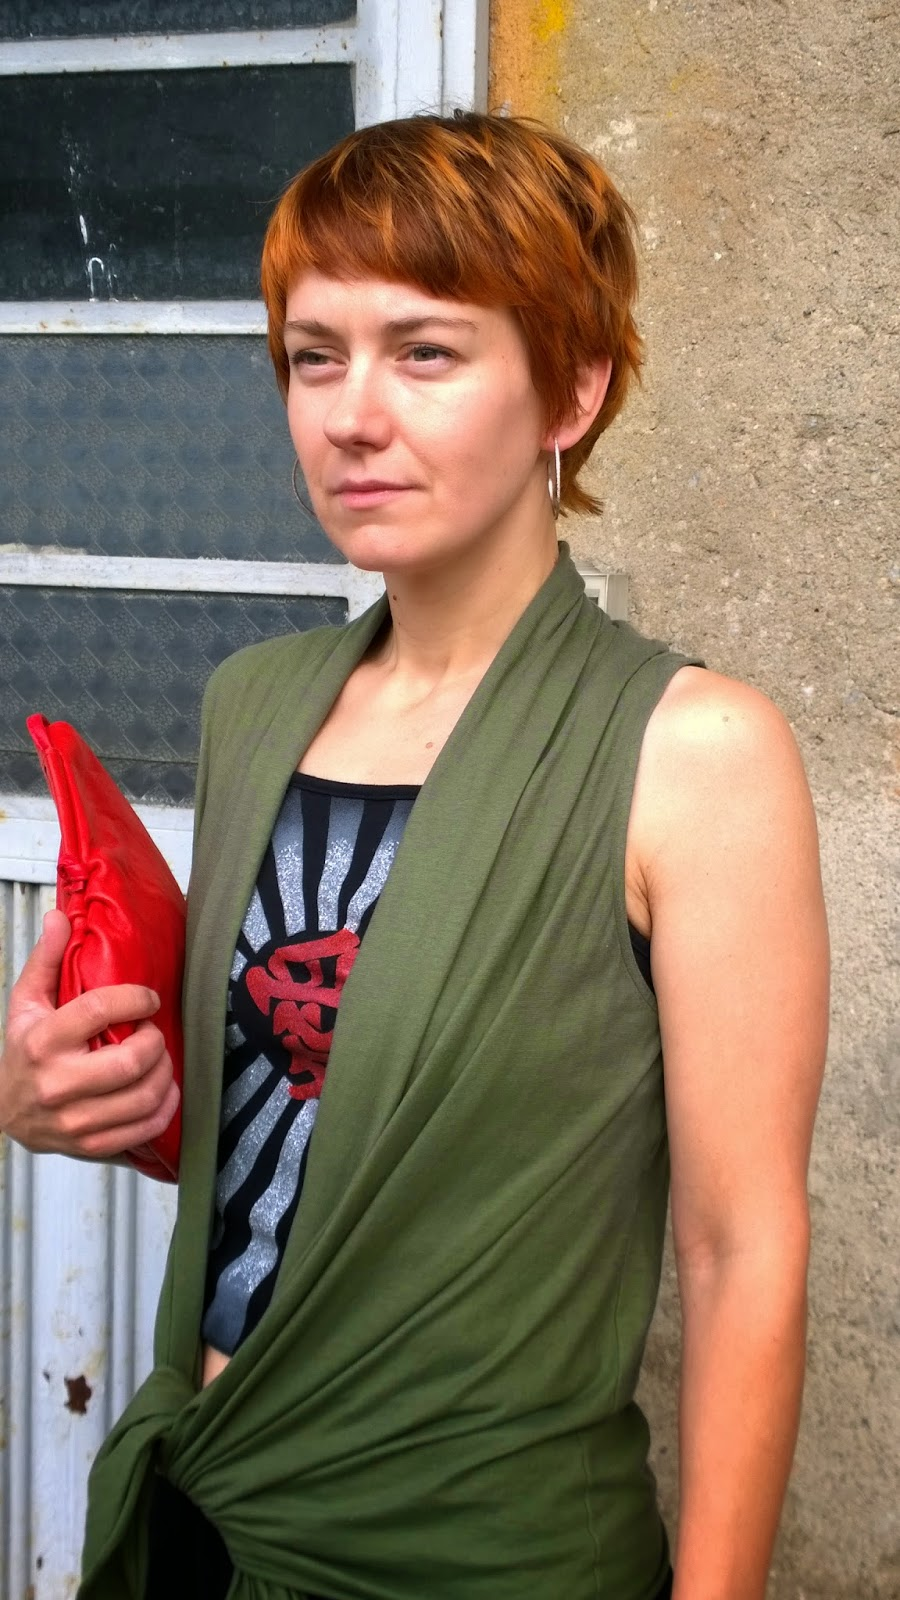 Casual, funky outfit - Knotted sleeveless vest, short top with print, red bag || Funky Jungle - mindful fashion & quirky personal style blog